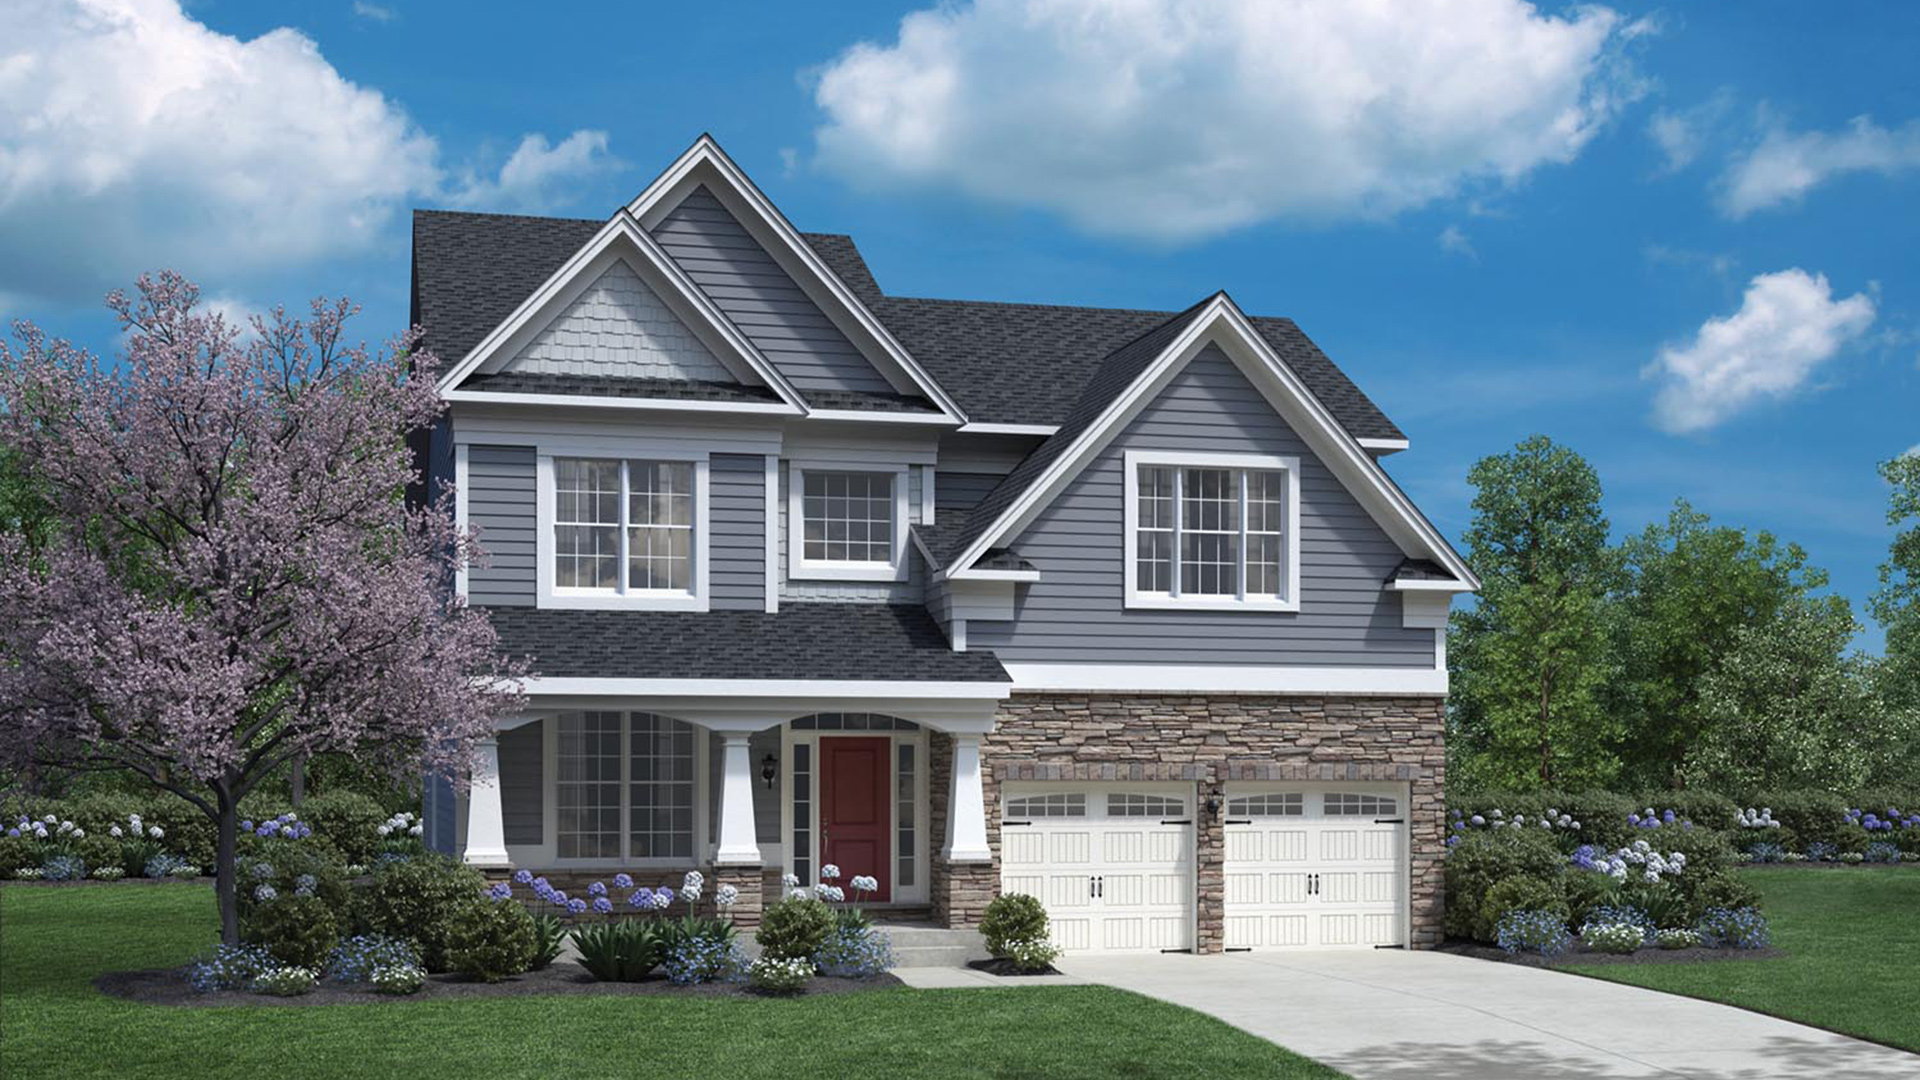 Brilliant The Pines At Wake Crossing The Woodstock Home Design Download Free Architecture Designs Scobabritishbridgeorg